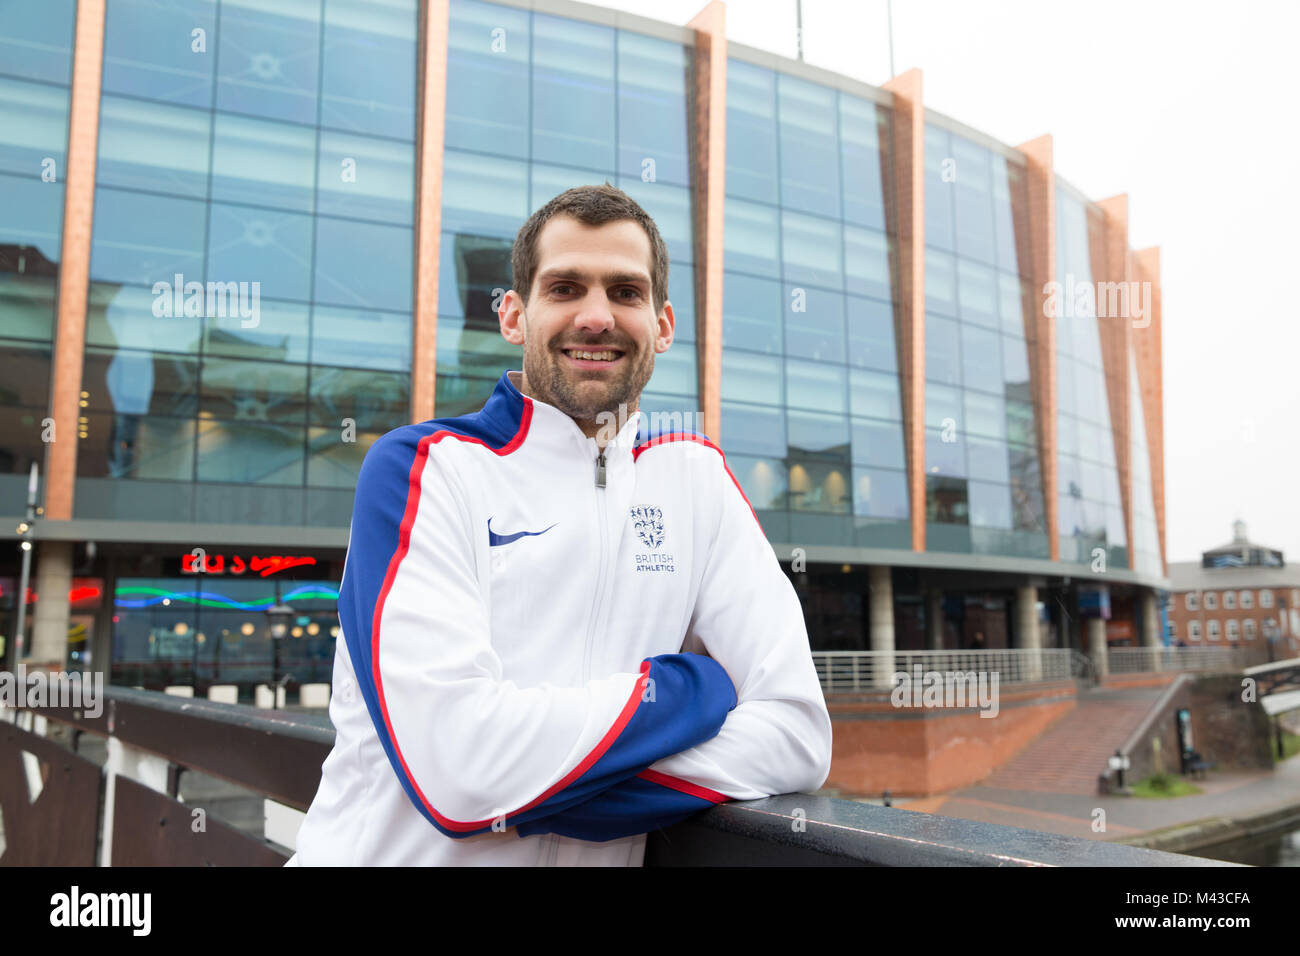 Birmingham, England, UK. 14th February 2018, Olympic Bronze Medalist high jumper Robbie Grabarz visiting the Arena - Stock Image